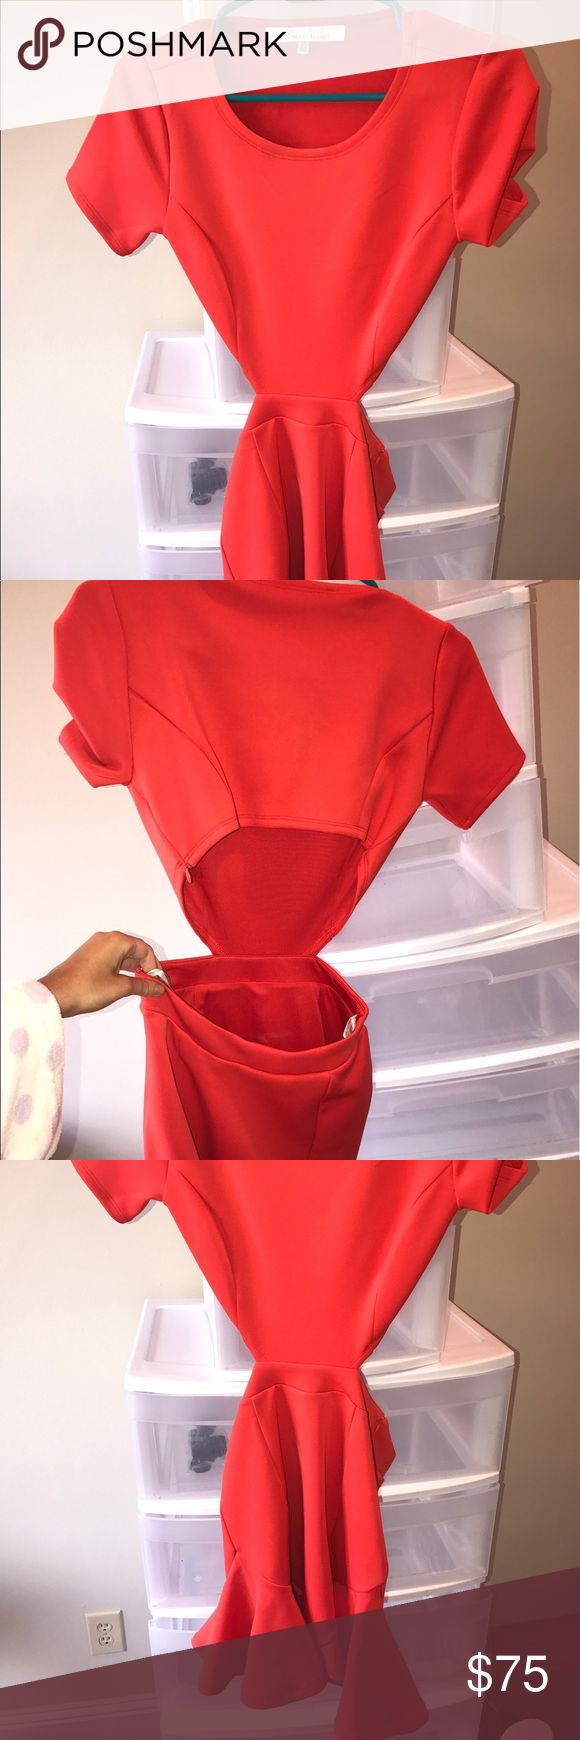 Lovers and friends red cut out dress Worn once Lovers + Friends Dresses Mini